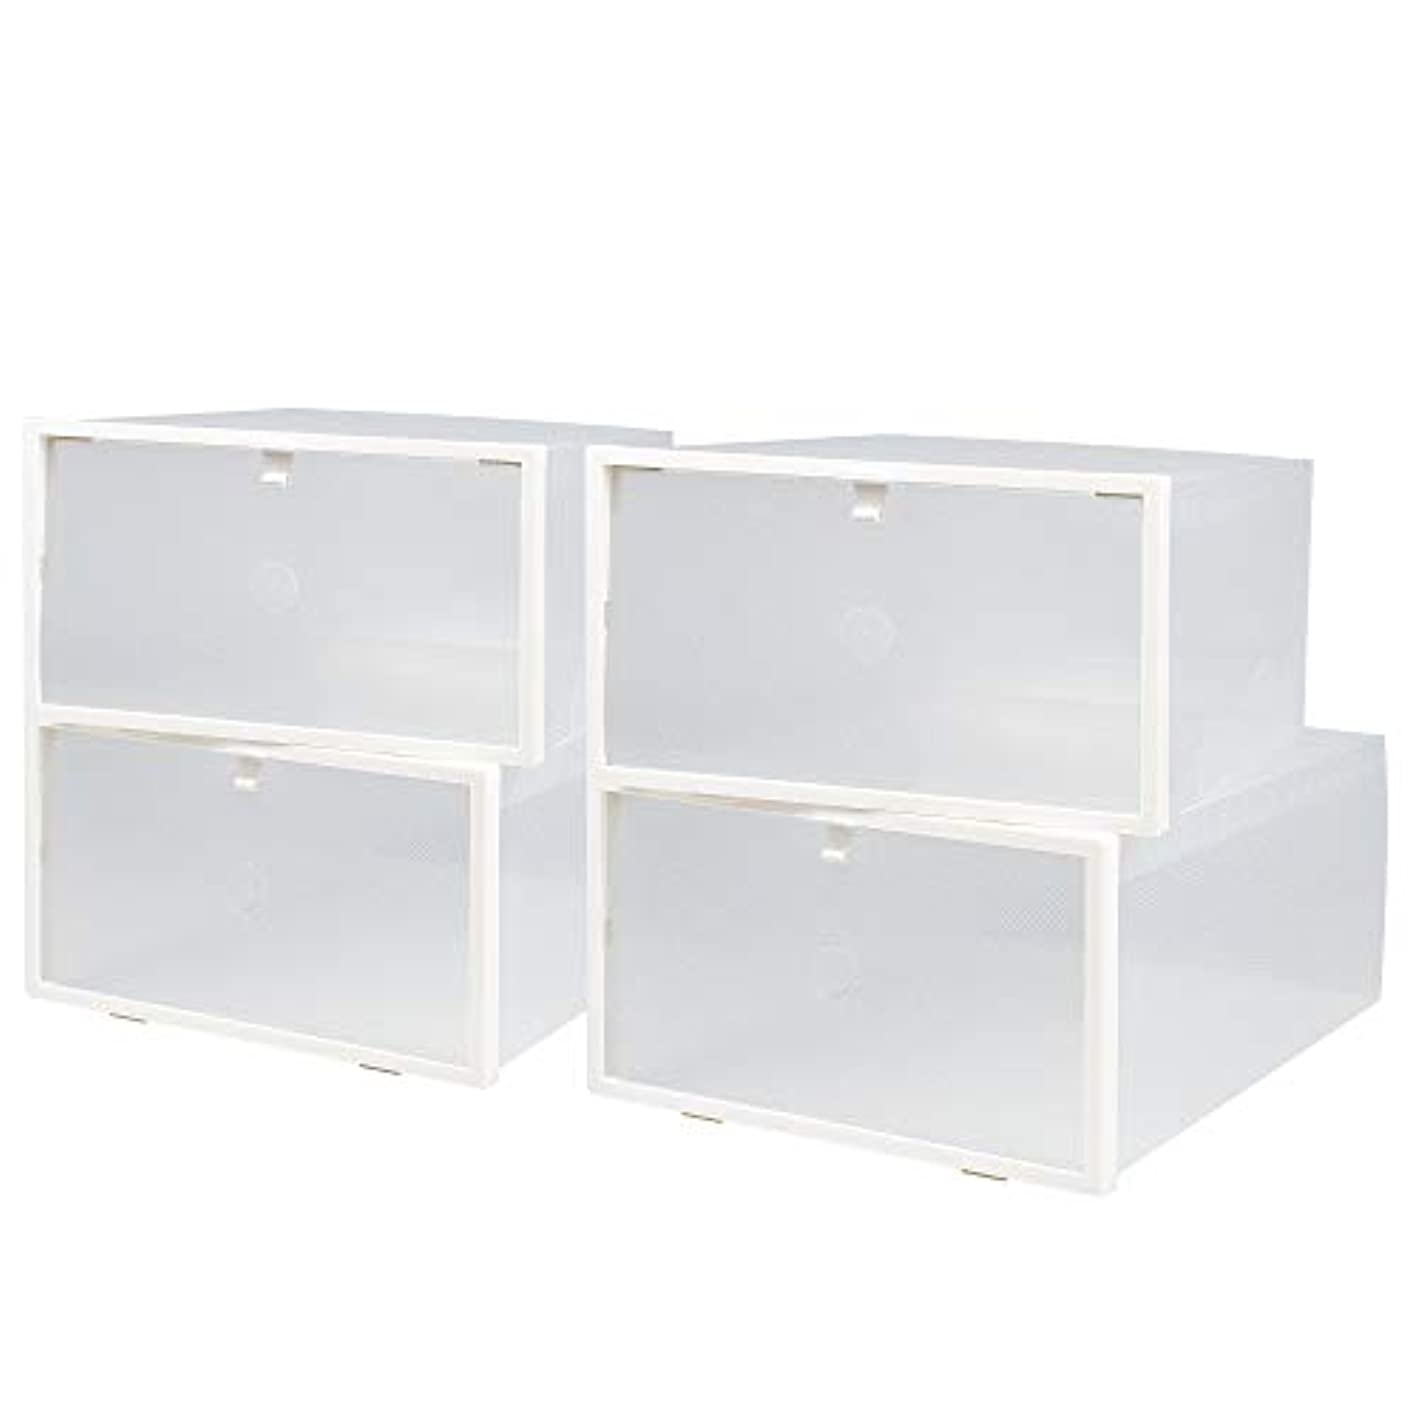 NEXTCOVER Women's Clear Stackable Shoe Storage Box -4 Pack,Clear,NMCB21830.